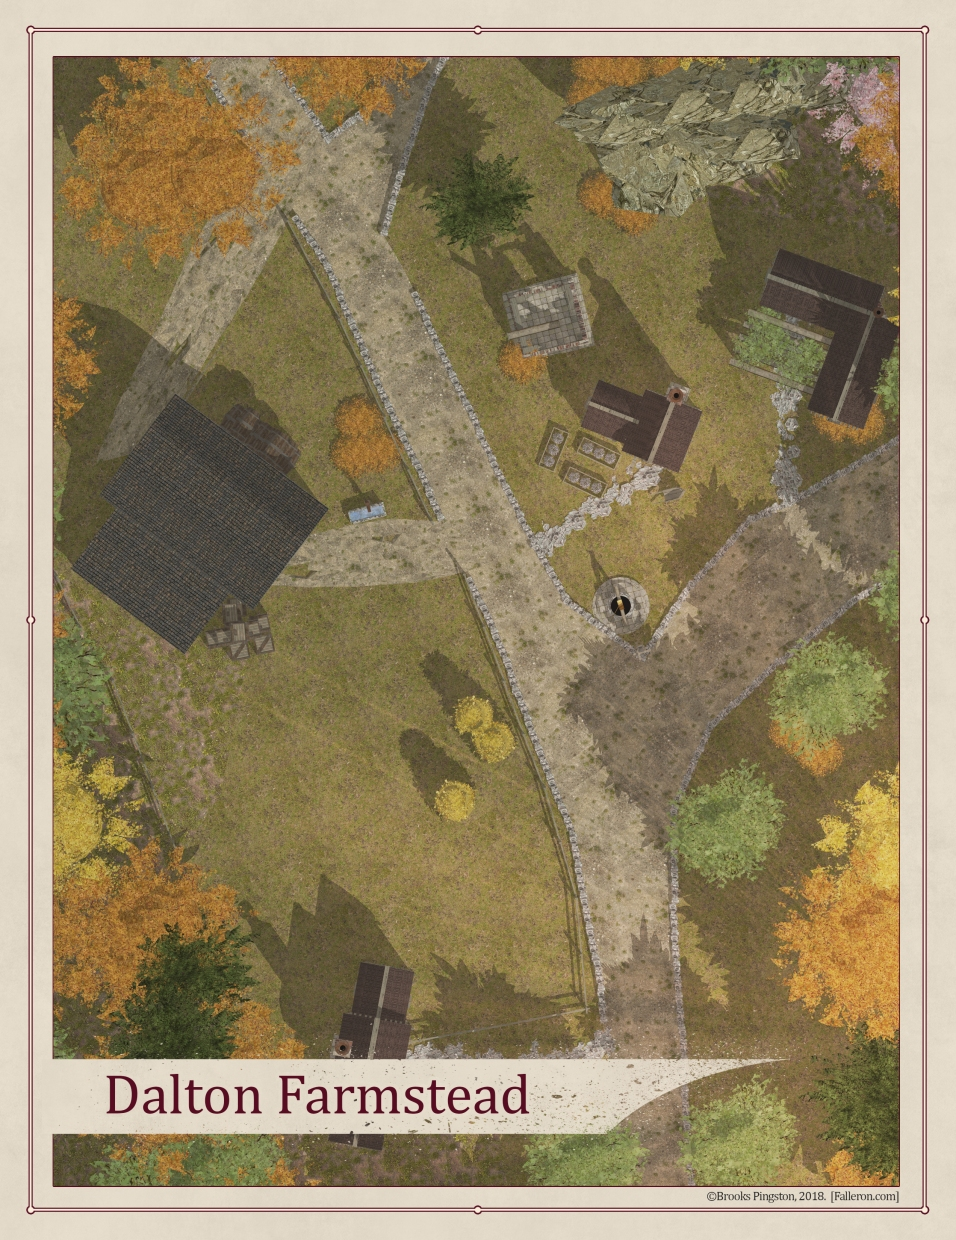 Dalton Farmstead Day1